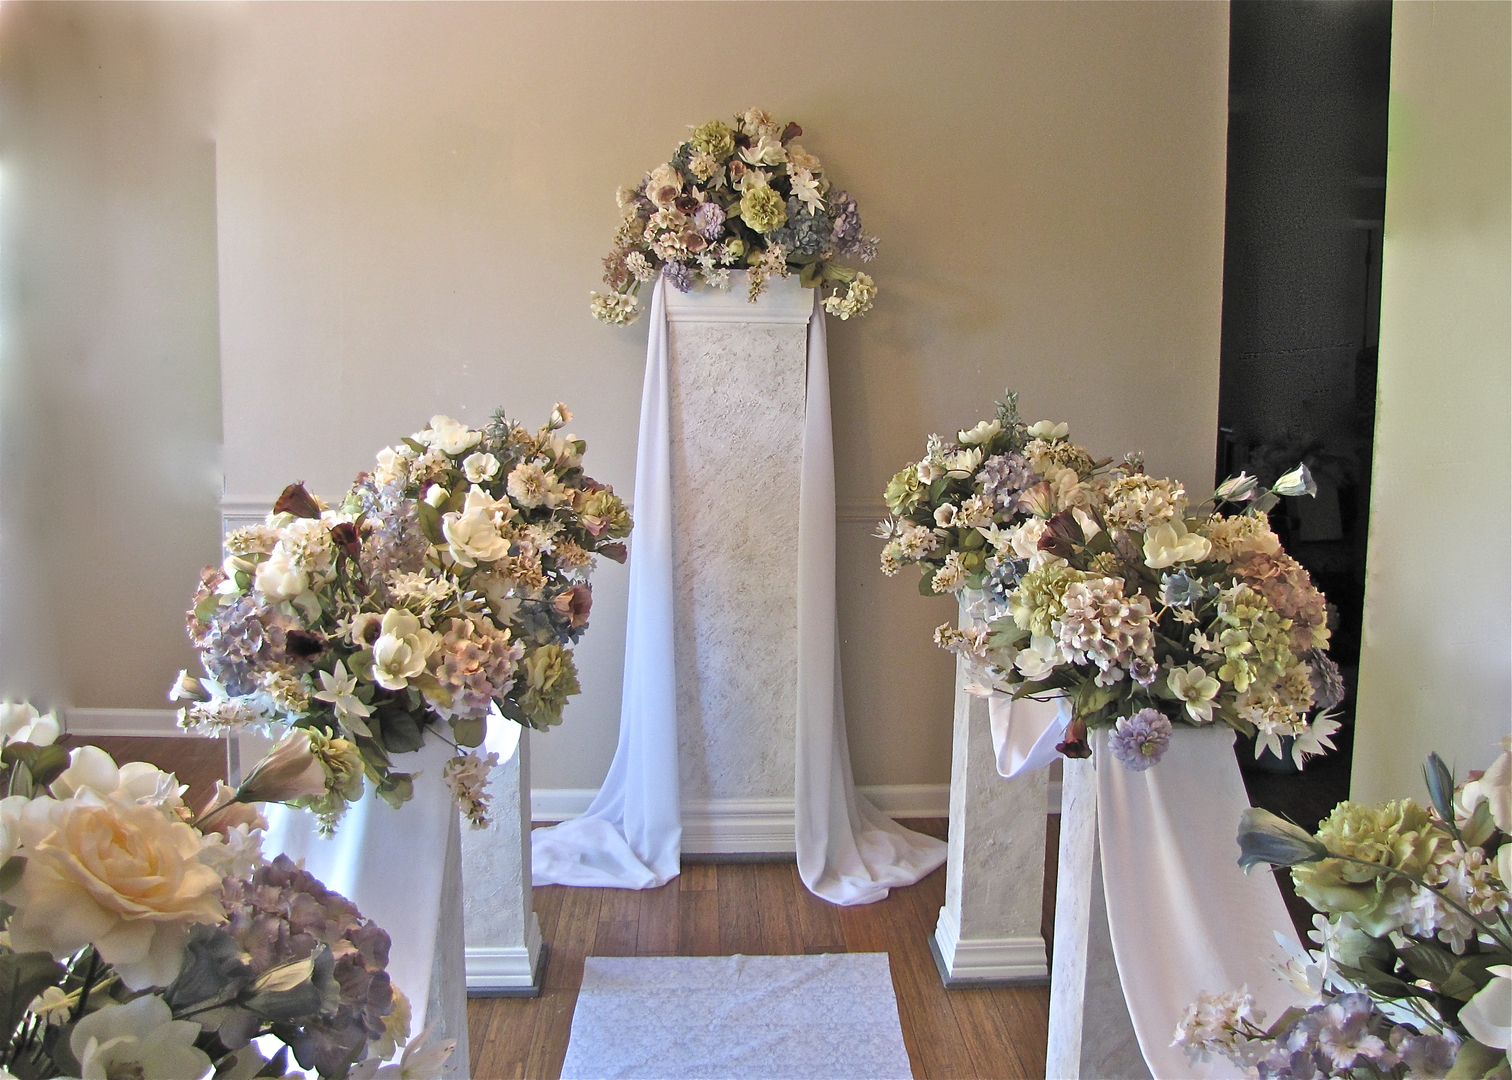 Rent Six Aisle Pillars An Altar Pillar With Florals Draping For 400 Under